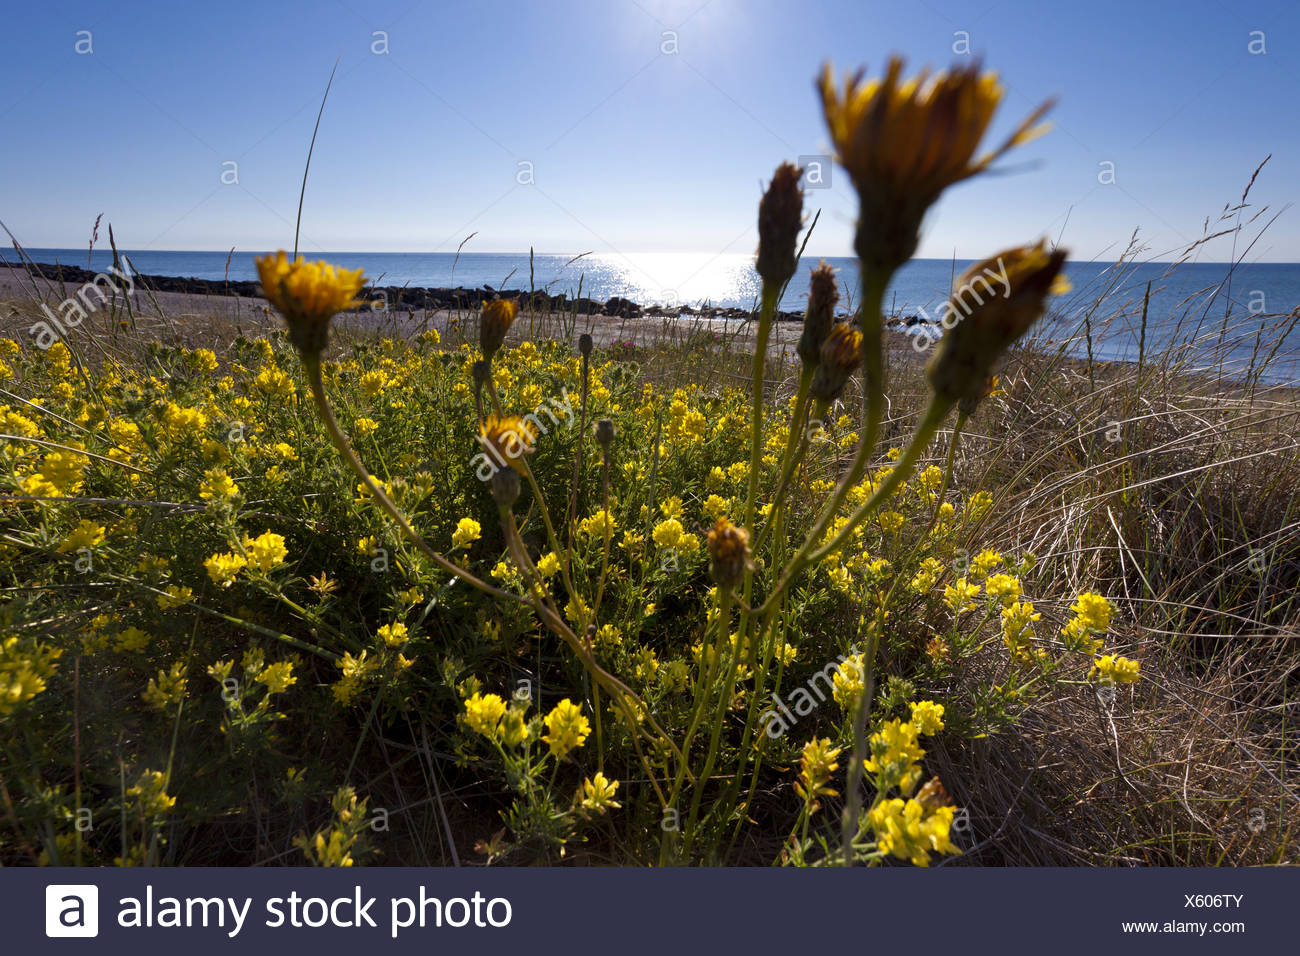 Sickle alfalfa sickle medick yellow lucerne yellow flowered sickle alfalfa sickle medick yellow lucerne yellow flowered alfalfa medicago falcata medicago sativa ssp falcata blooming at the coast together with mightylinksfo